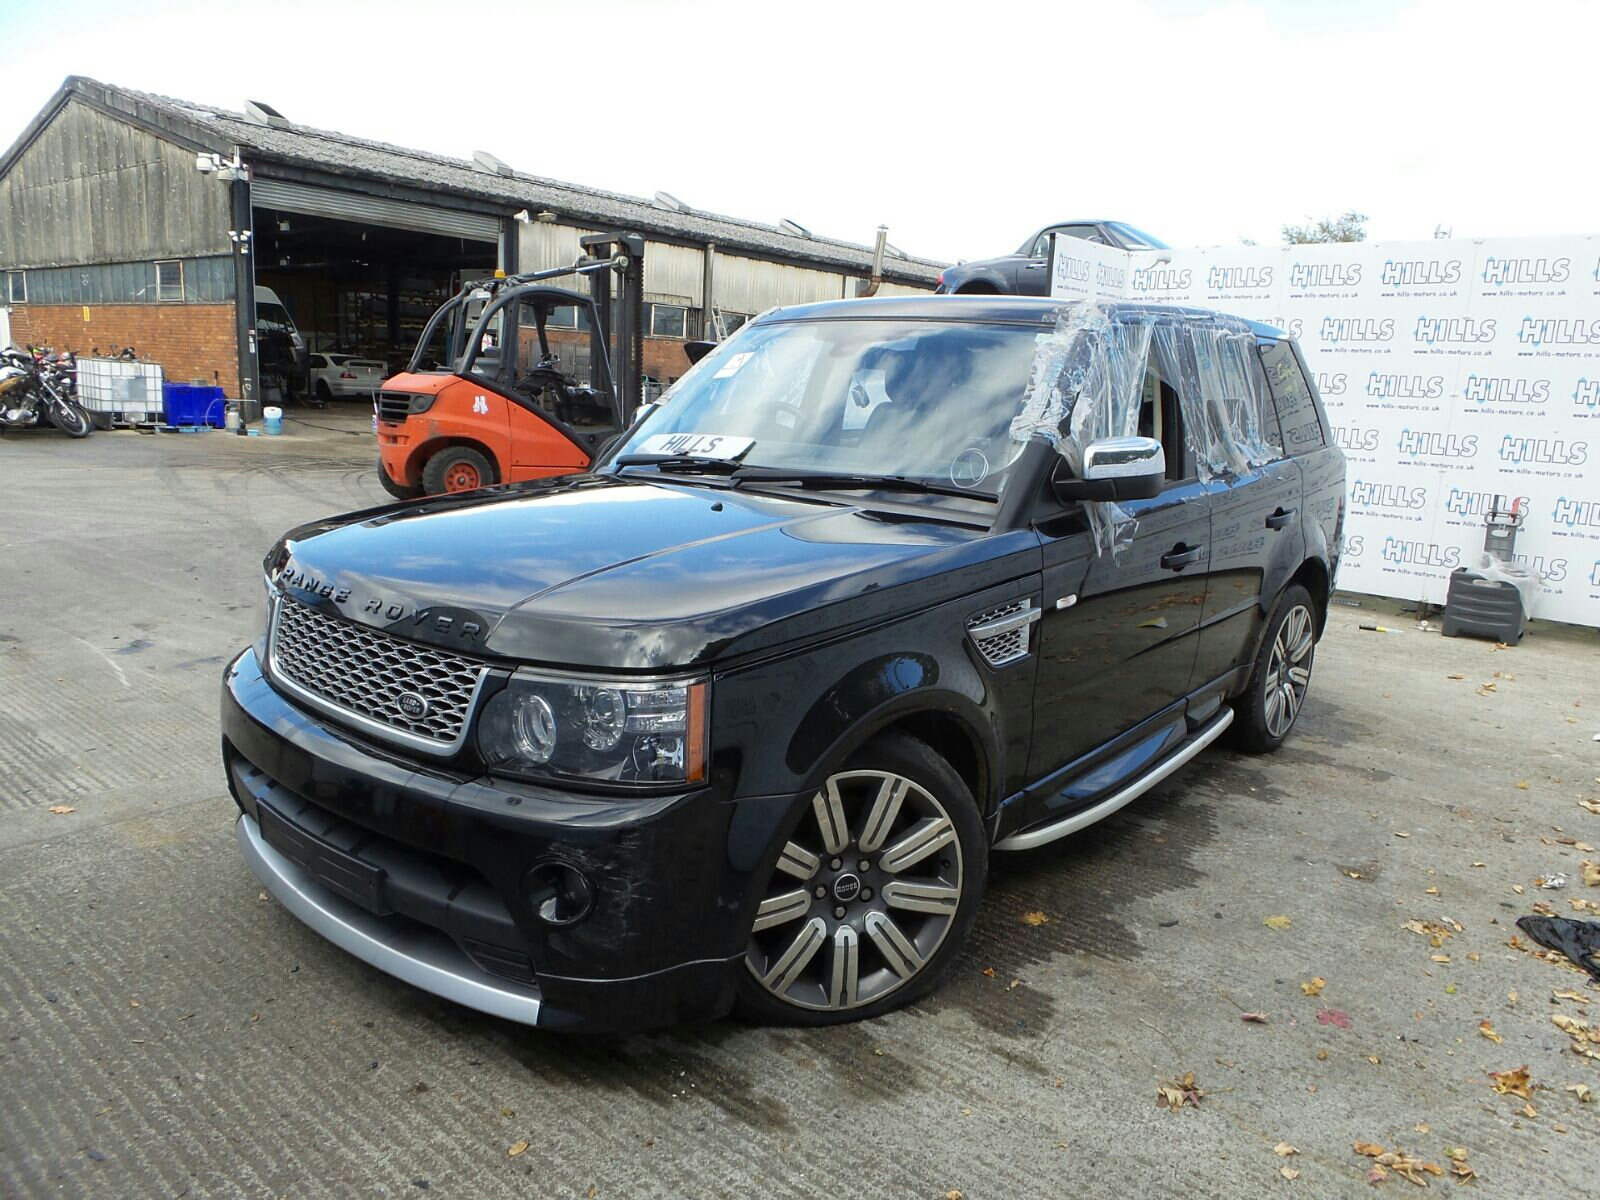 hills salvage details second rover breakers car vehicle online land diesel parts recycling freelander hand landrover ltd used